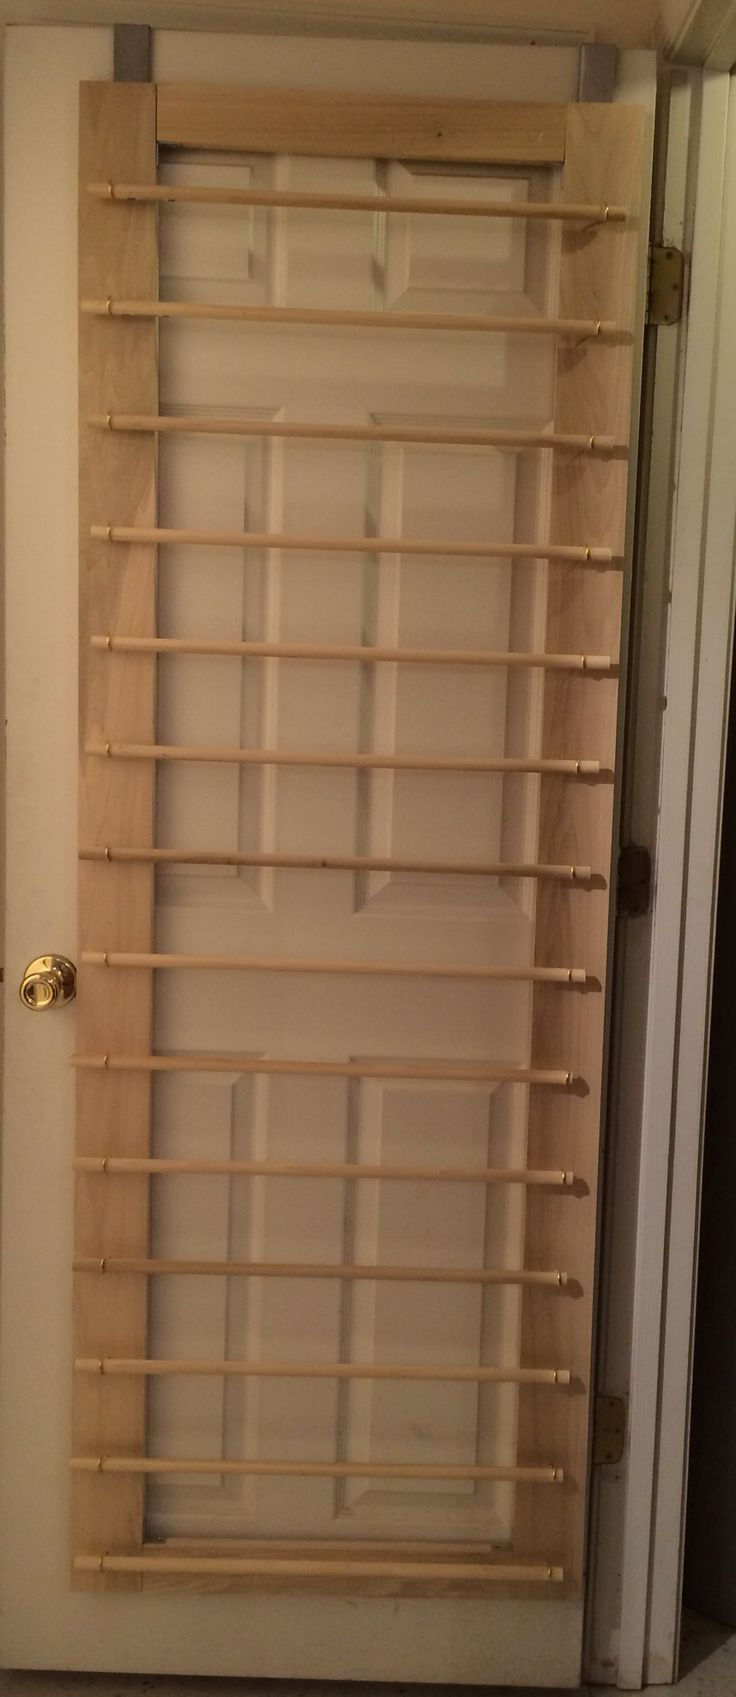 My new vinyl roll storage rack. I made it in about an hour...